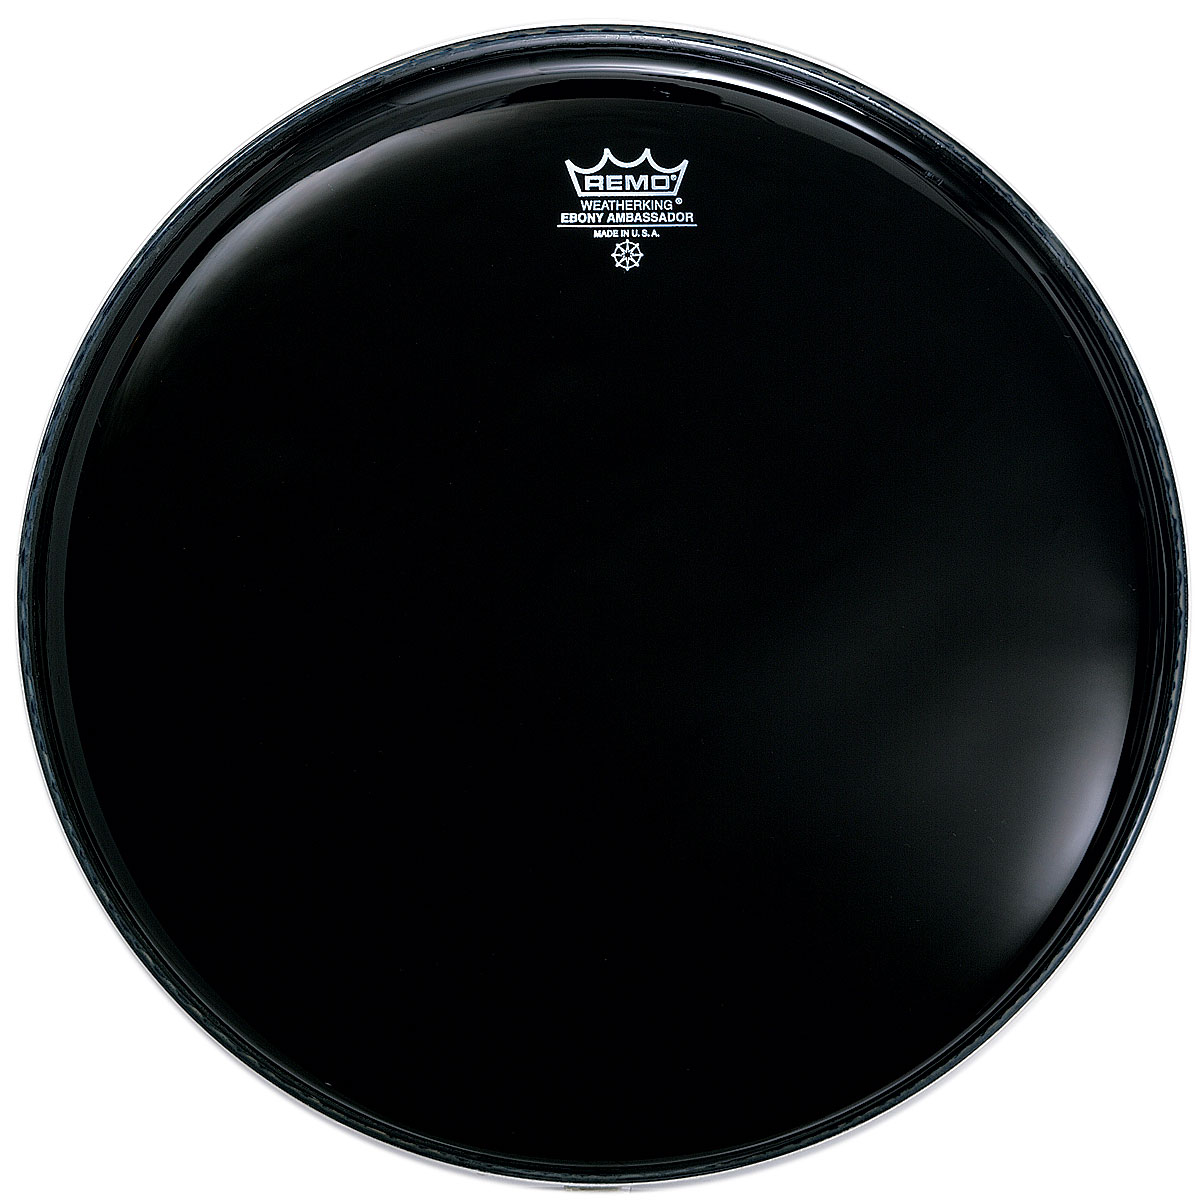 "Remo 10"" Ambassador Ebony Drum Head"